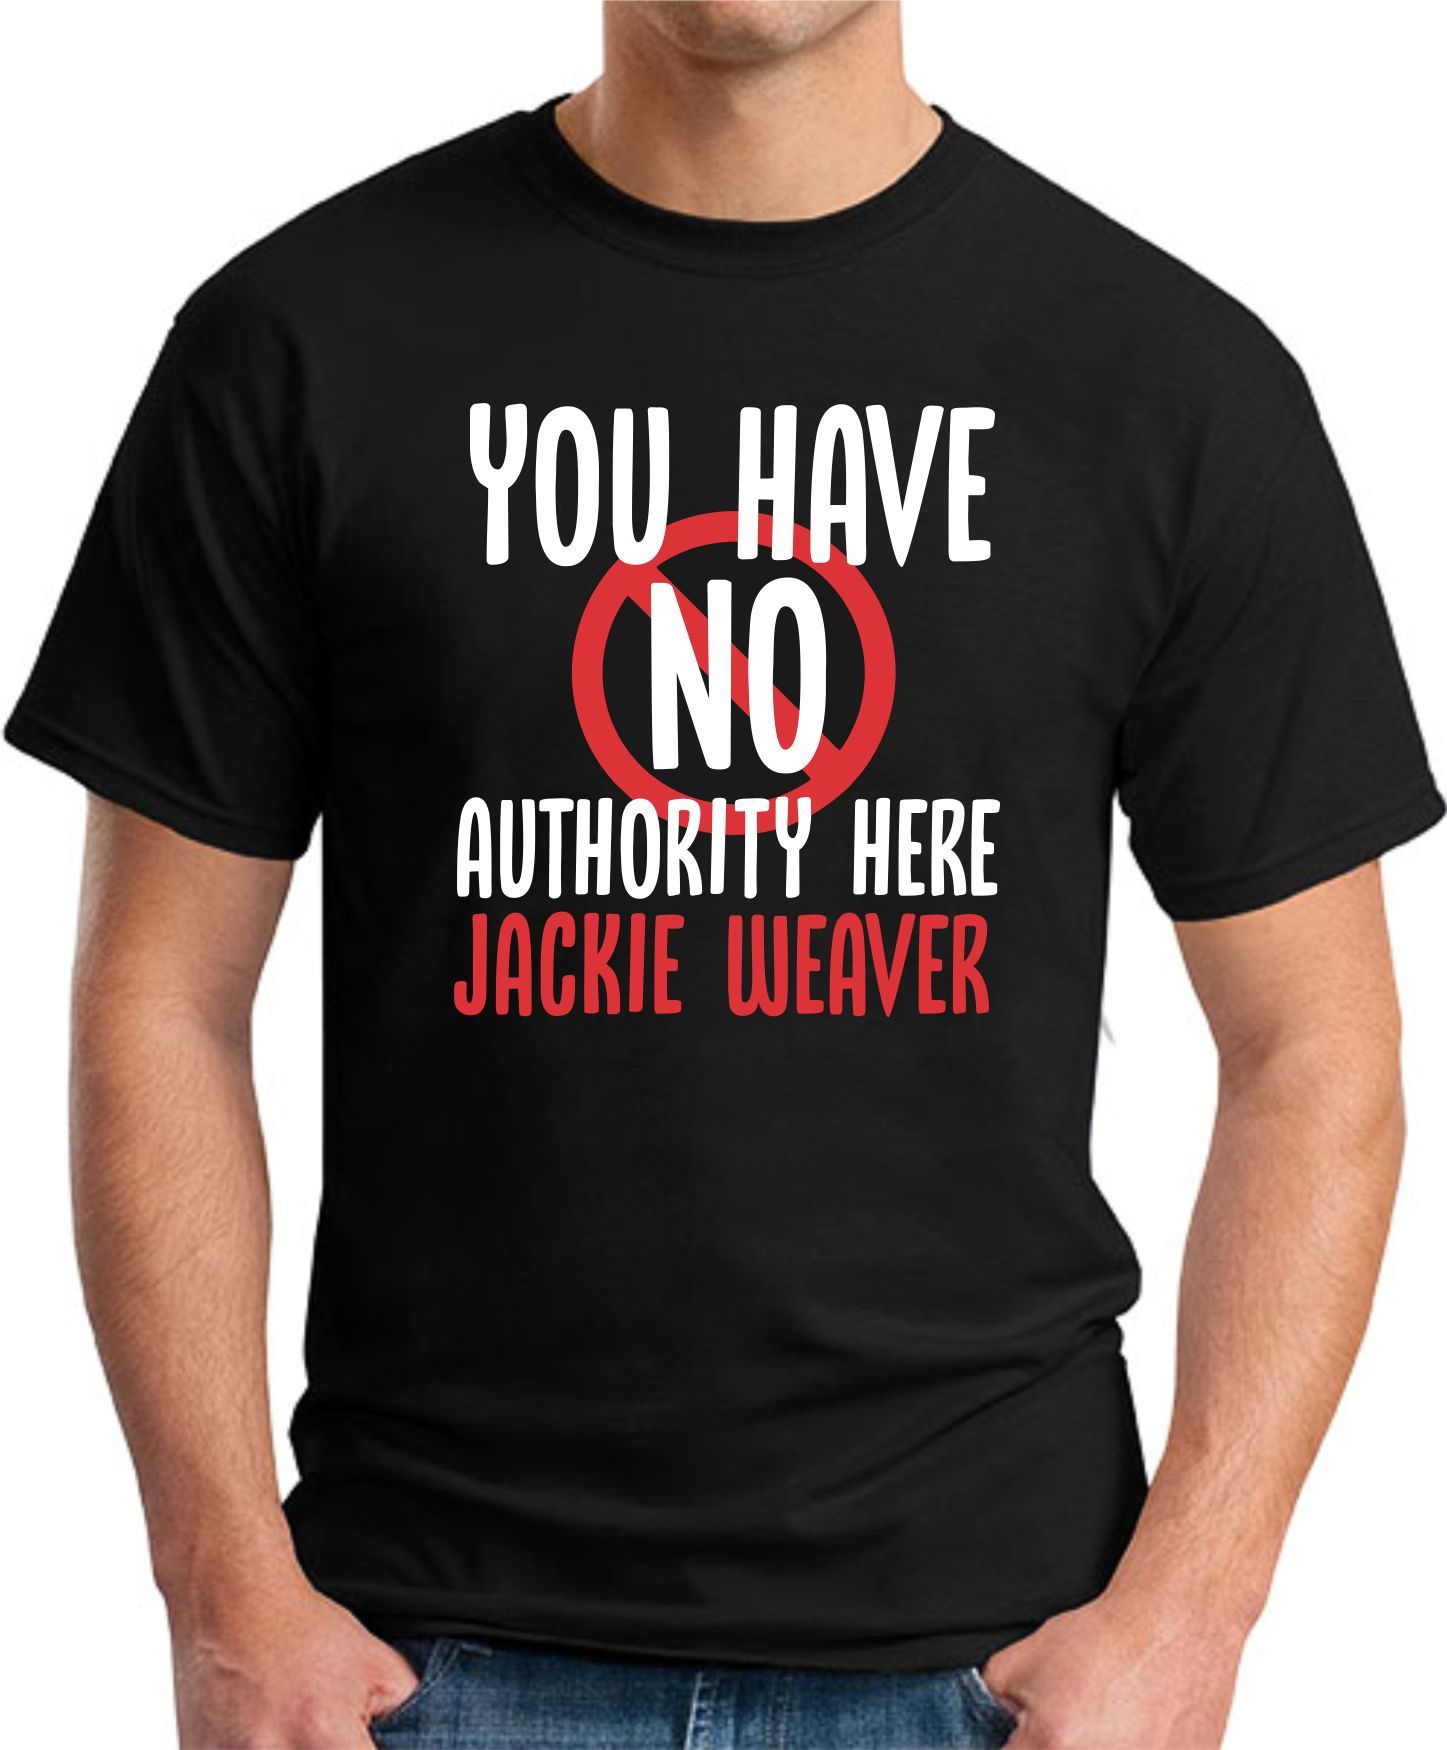 You have No Authority Here Jackie Weaver black